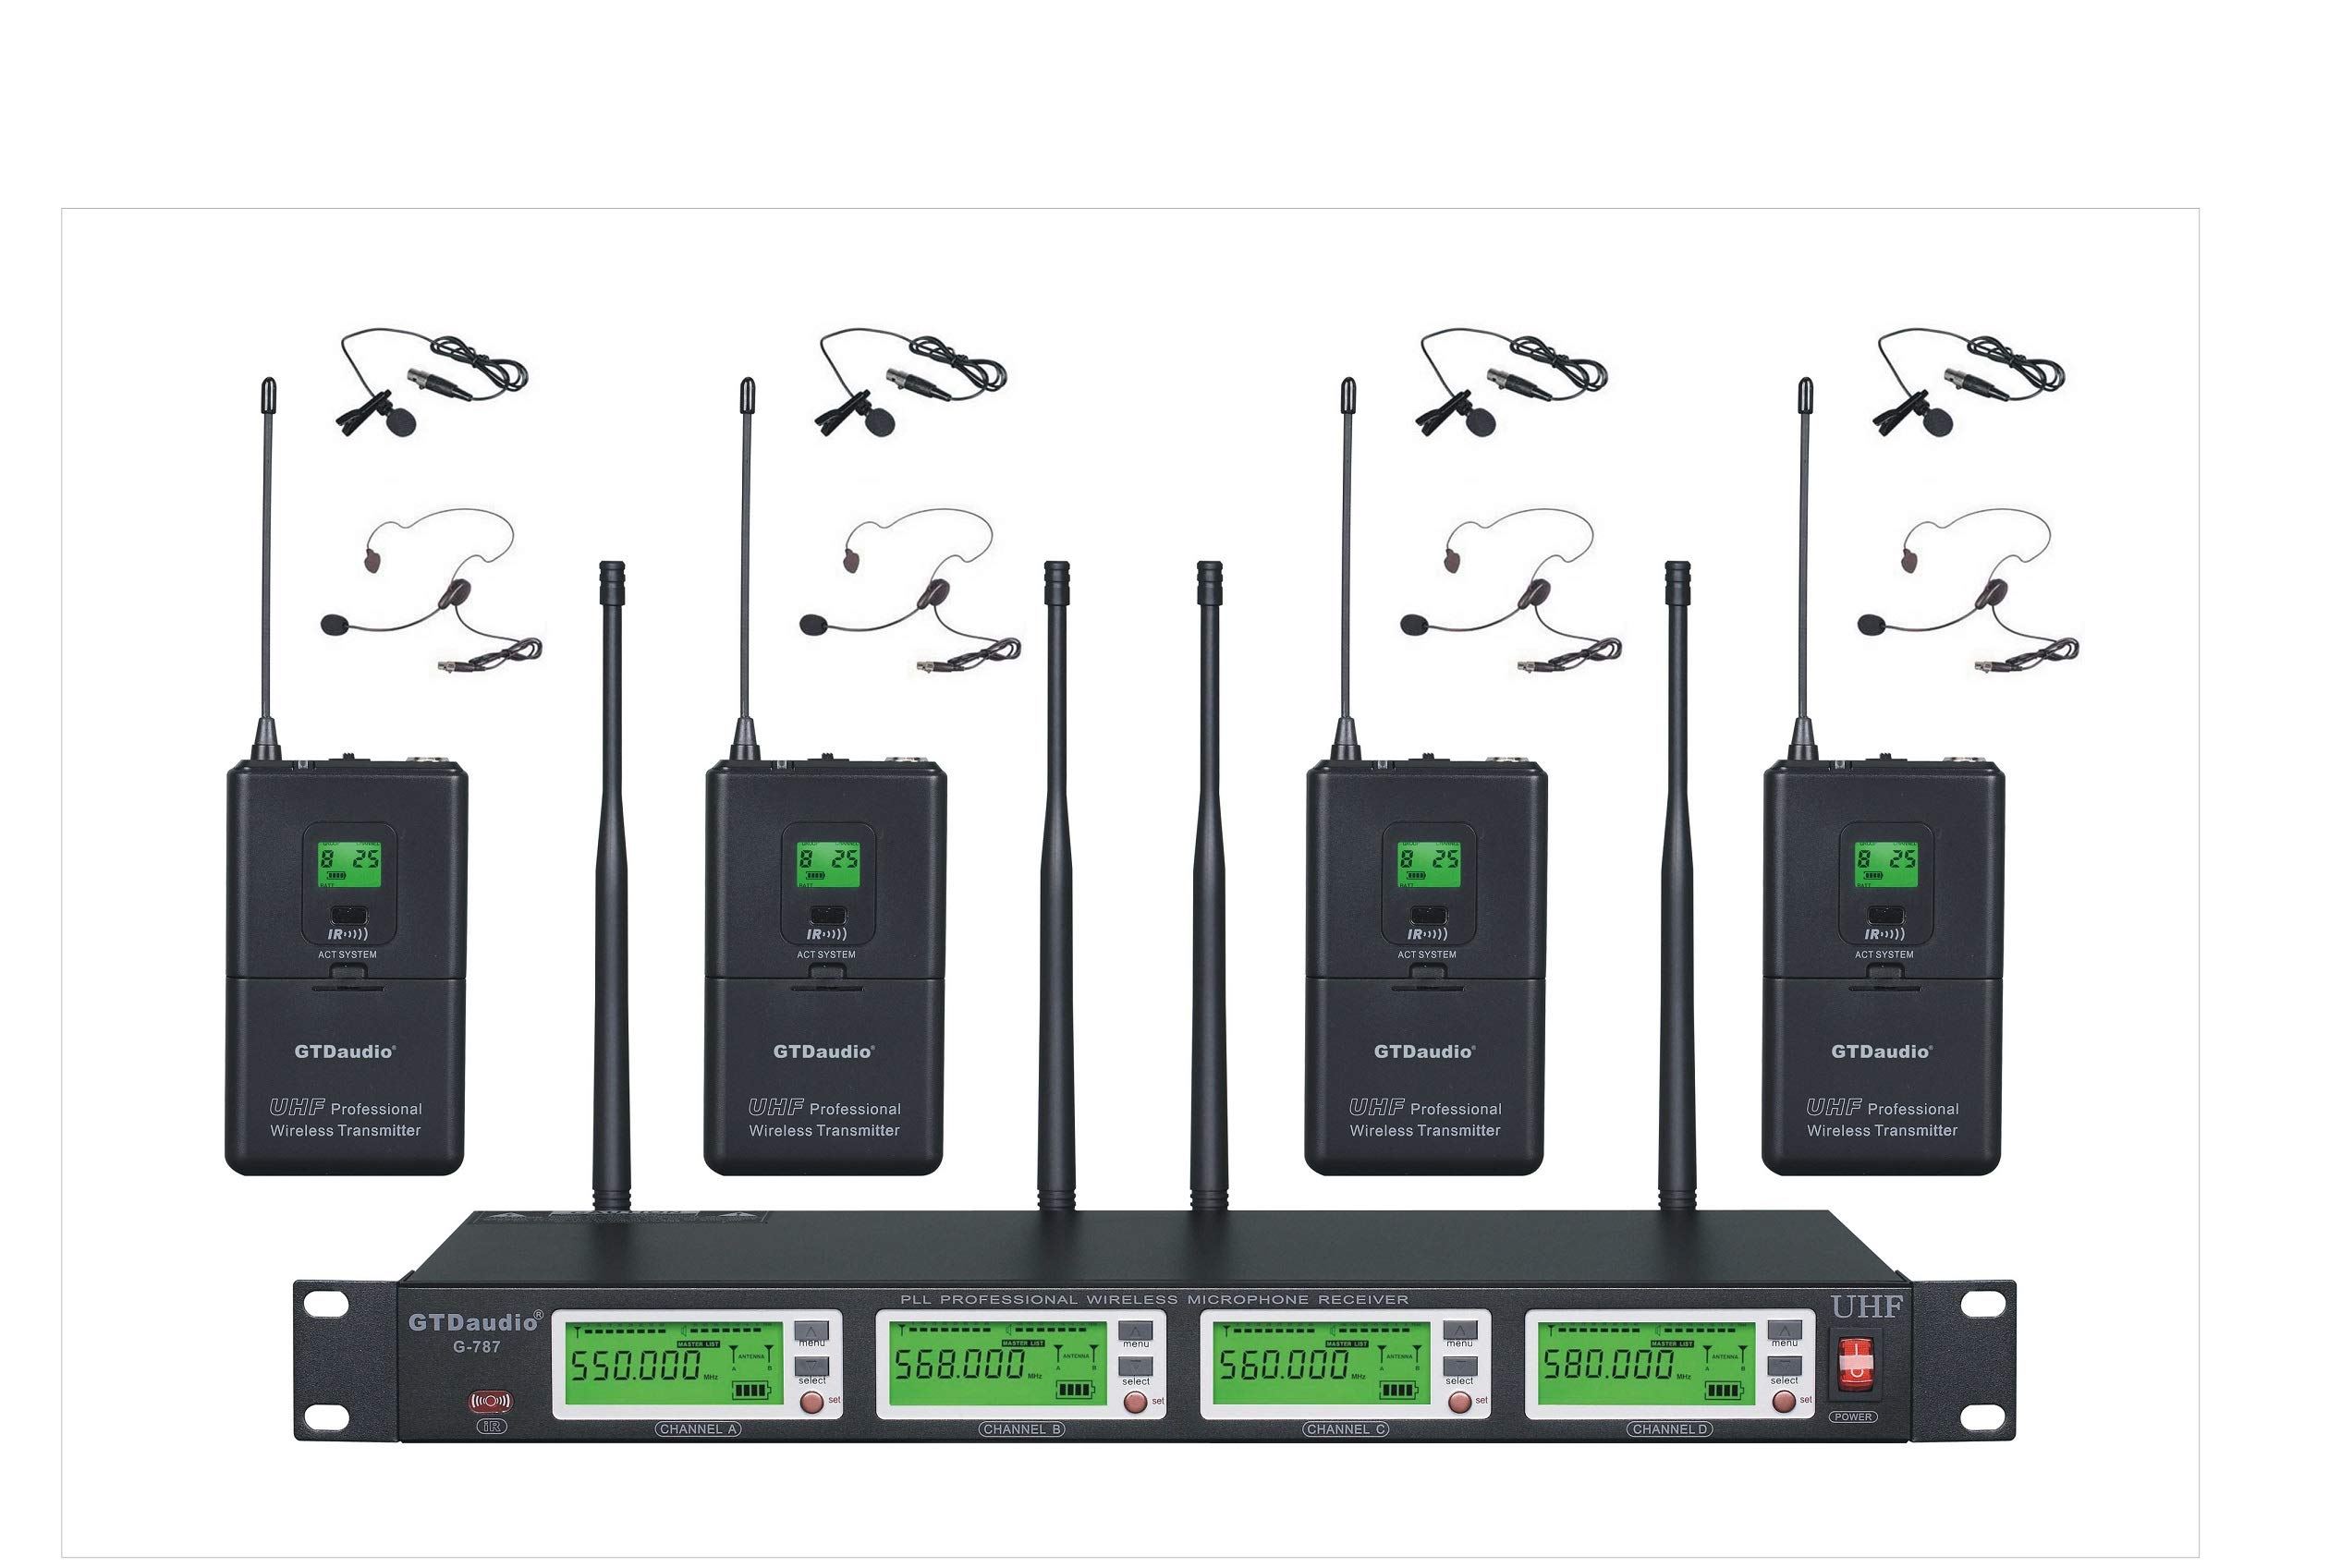 GTD Audio 4x800 Channel Selectable Frequency UHF Diversity Wireless Lavalier/Lapel/Headset Microphone Mic System 787 (4 Lavaliere Mics) by GTDaudio